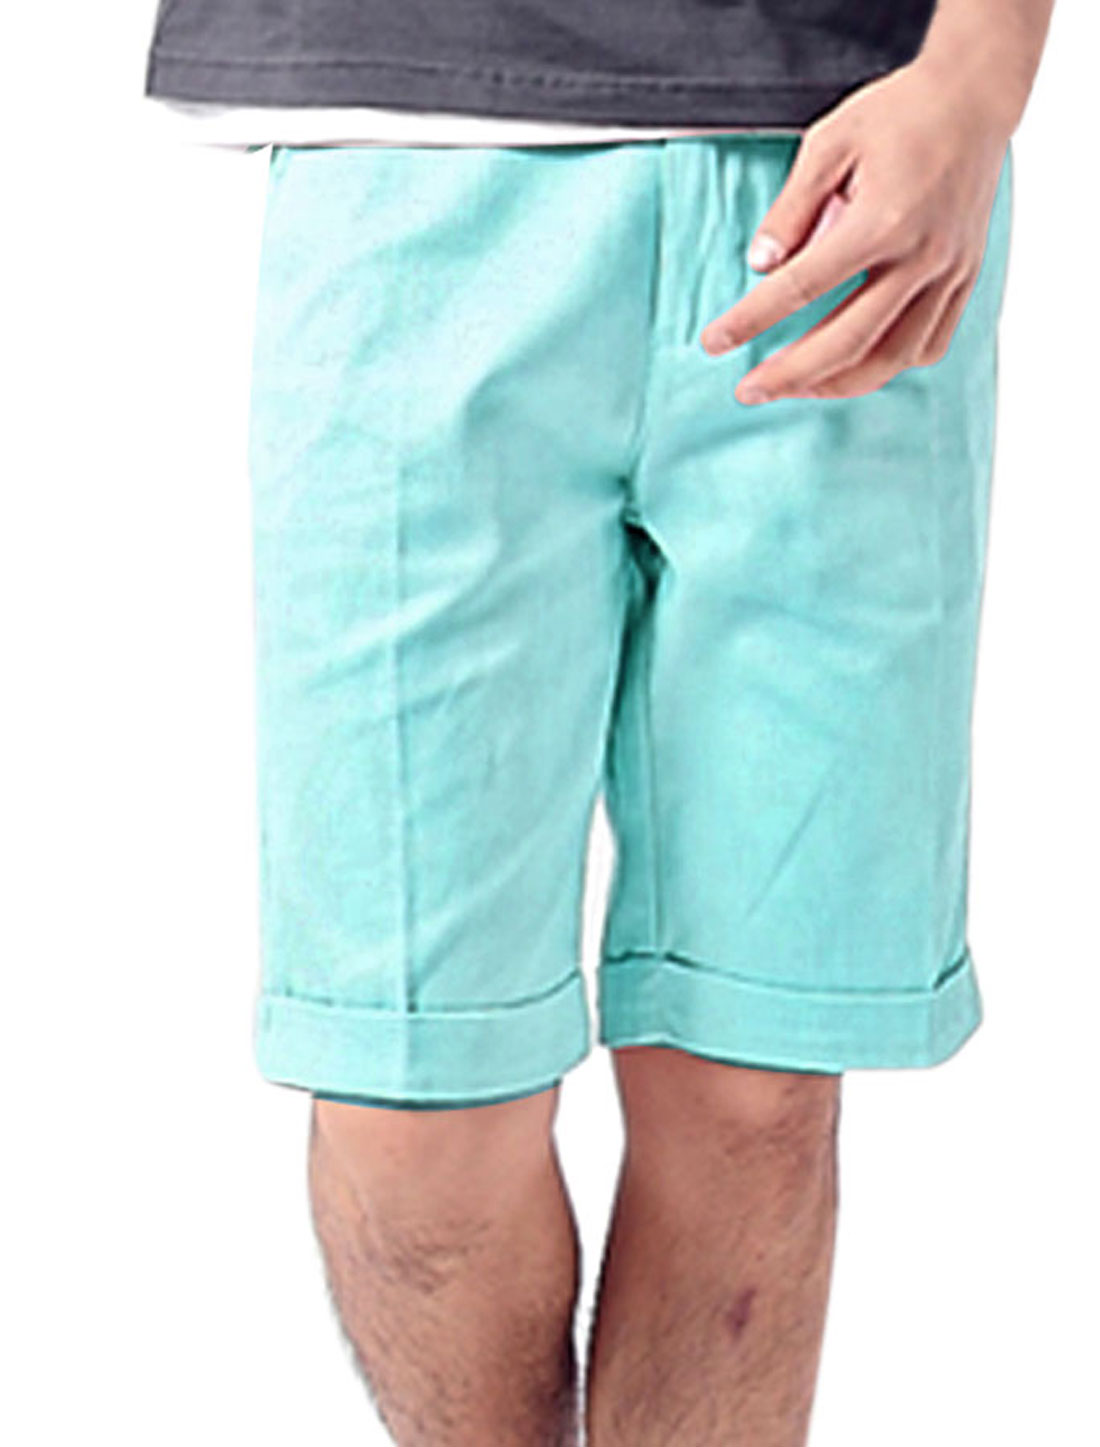 Man Korean Style Slant Pockets Casual Shorts Light Blue W33